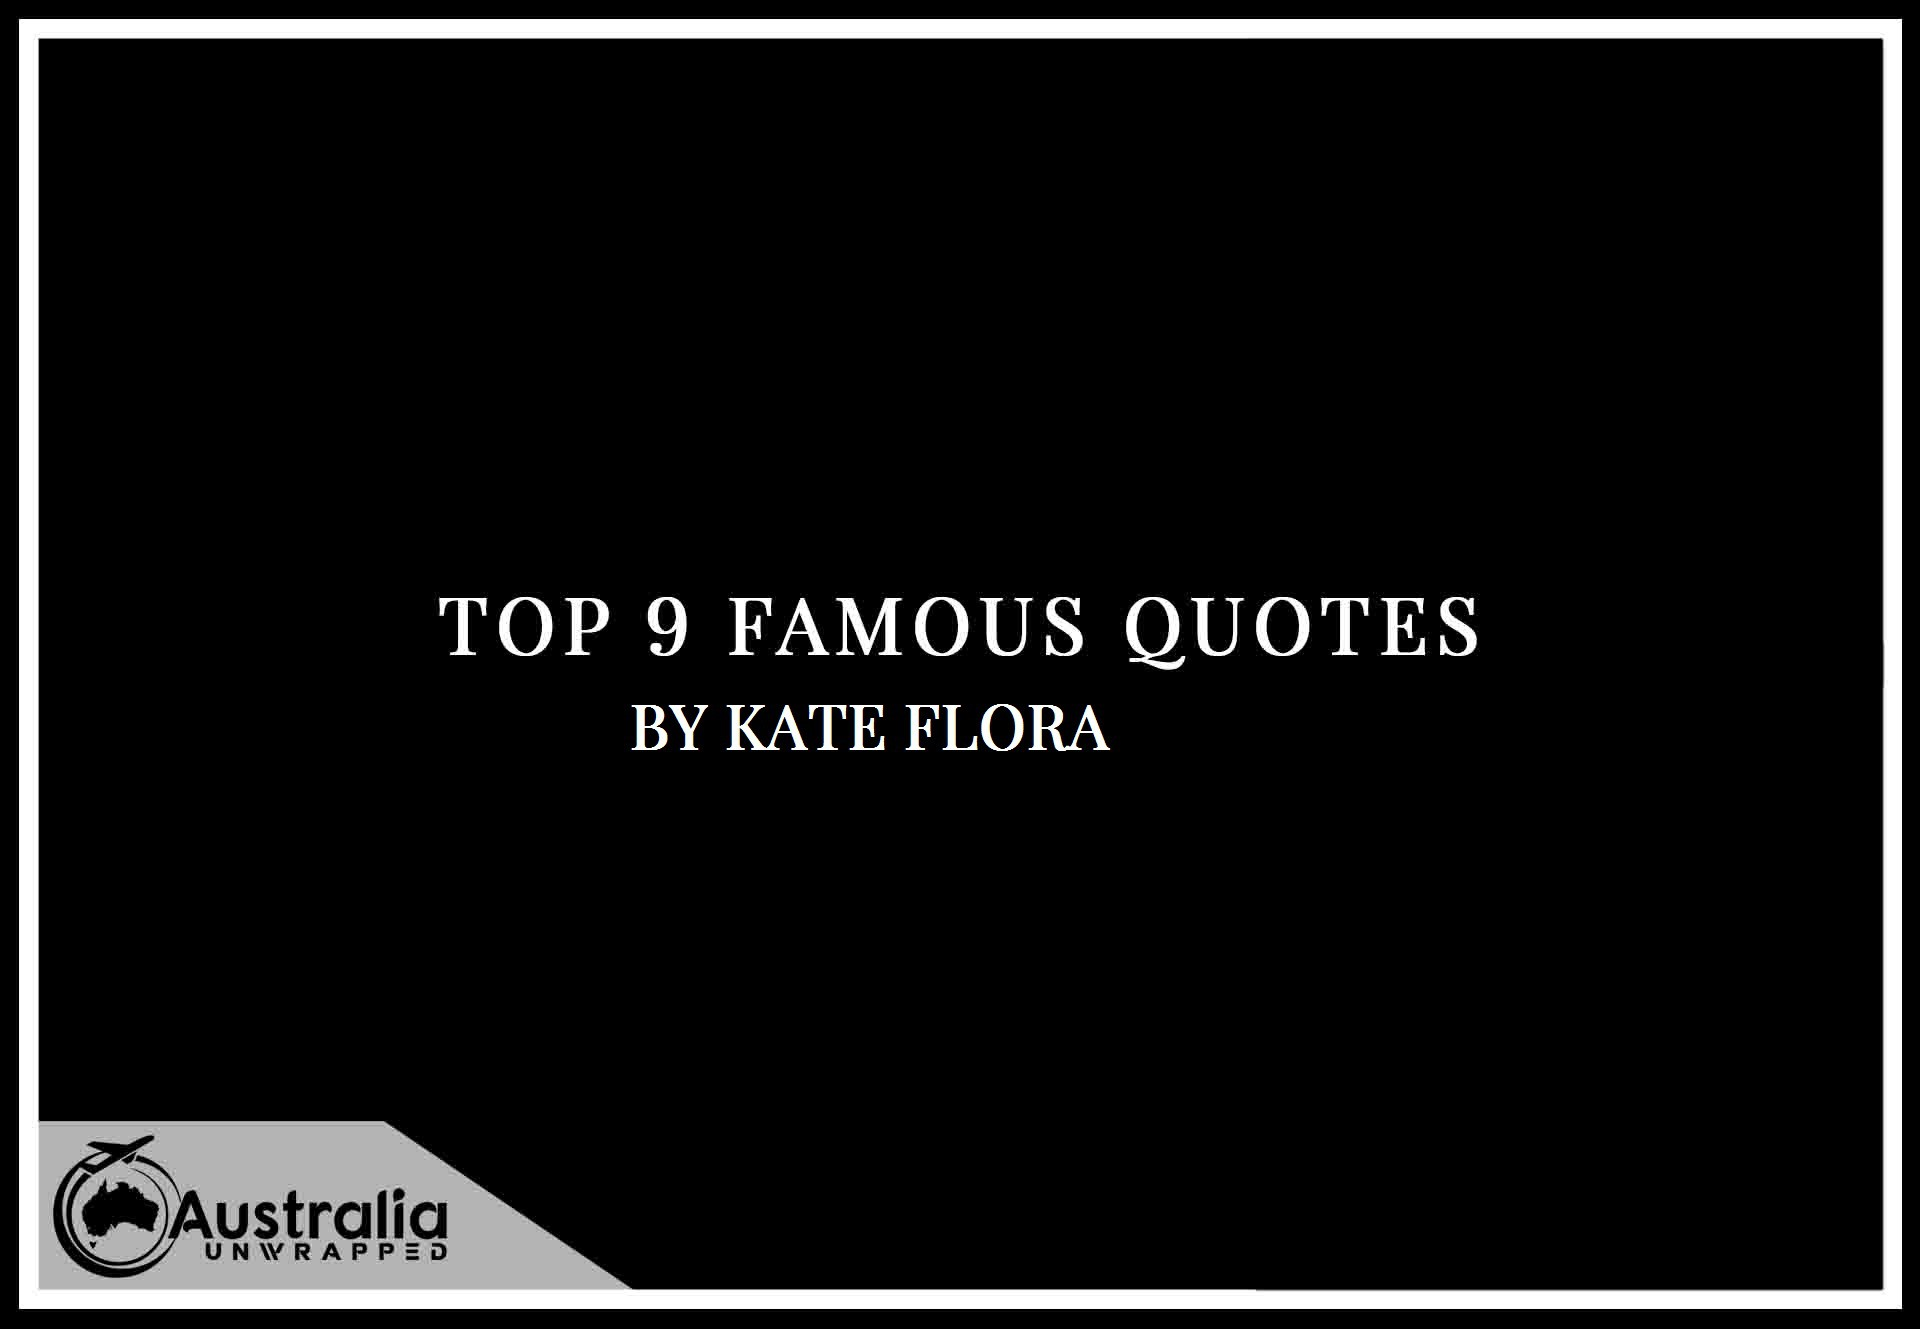 Kate Flora's Top 9 Popular and Famous Quotes